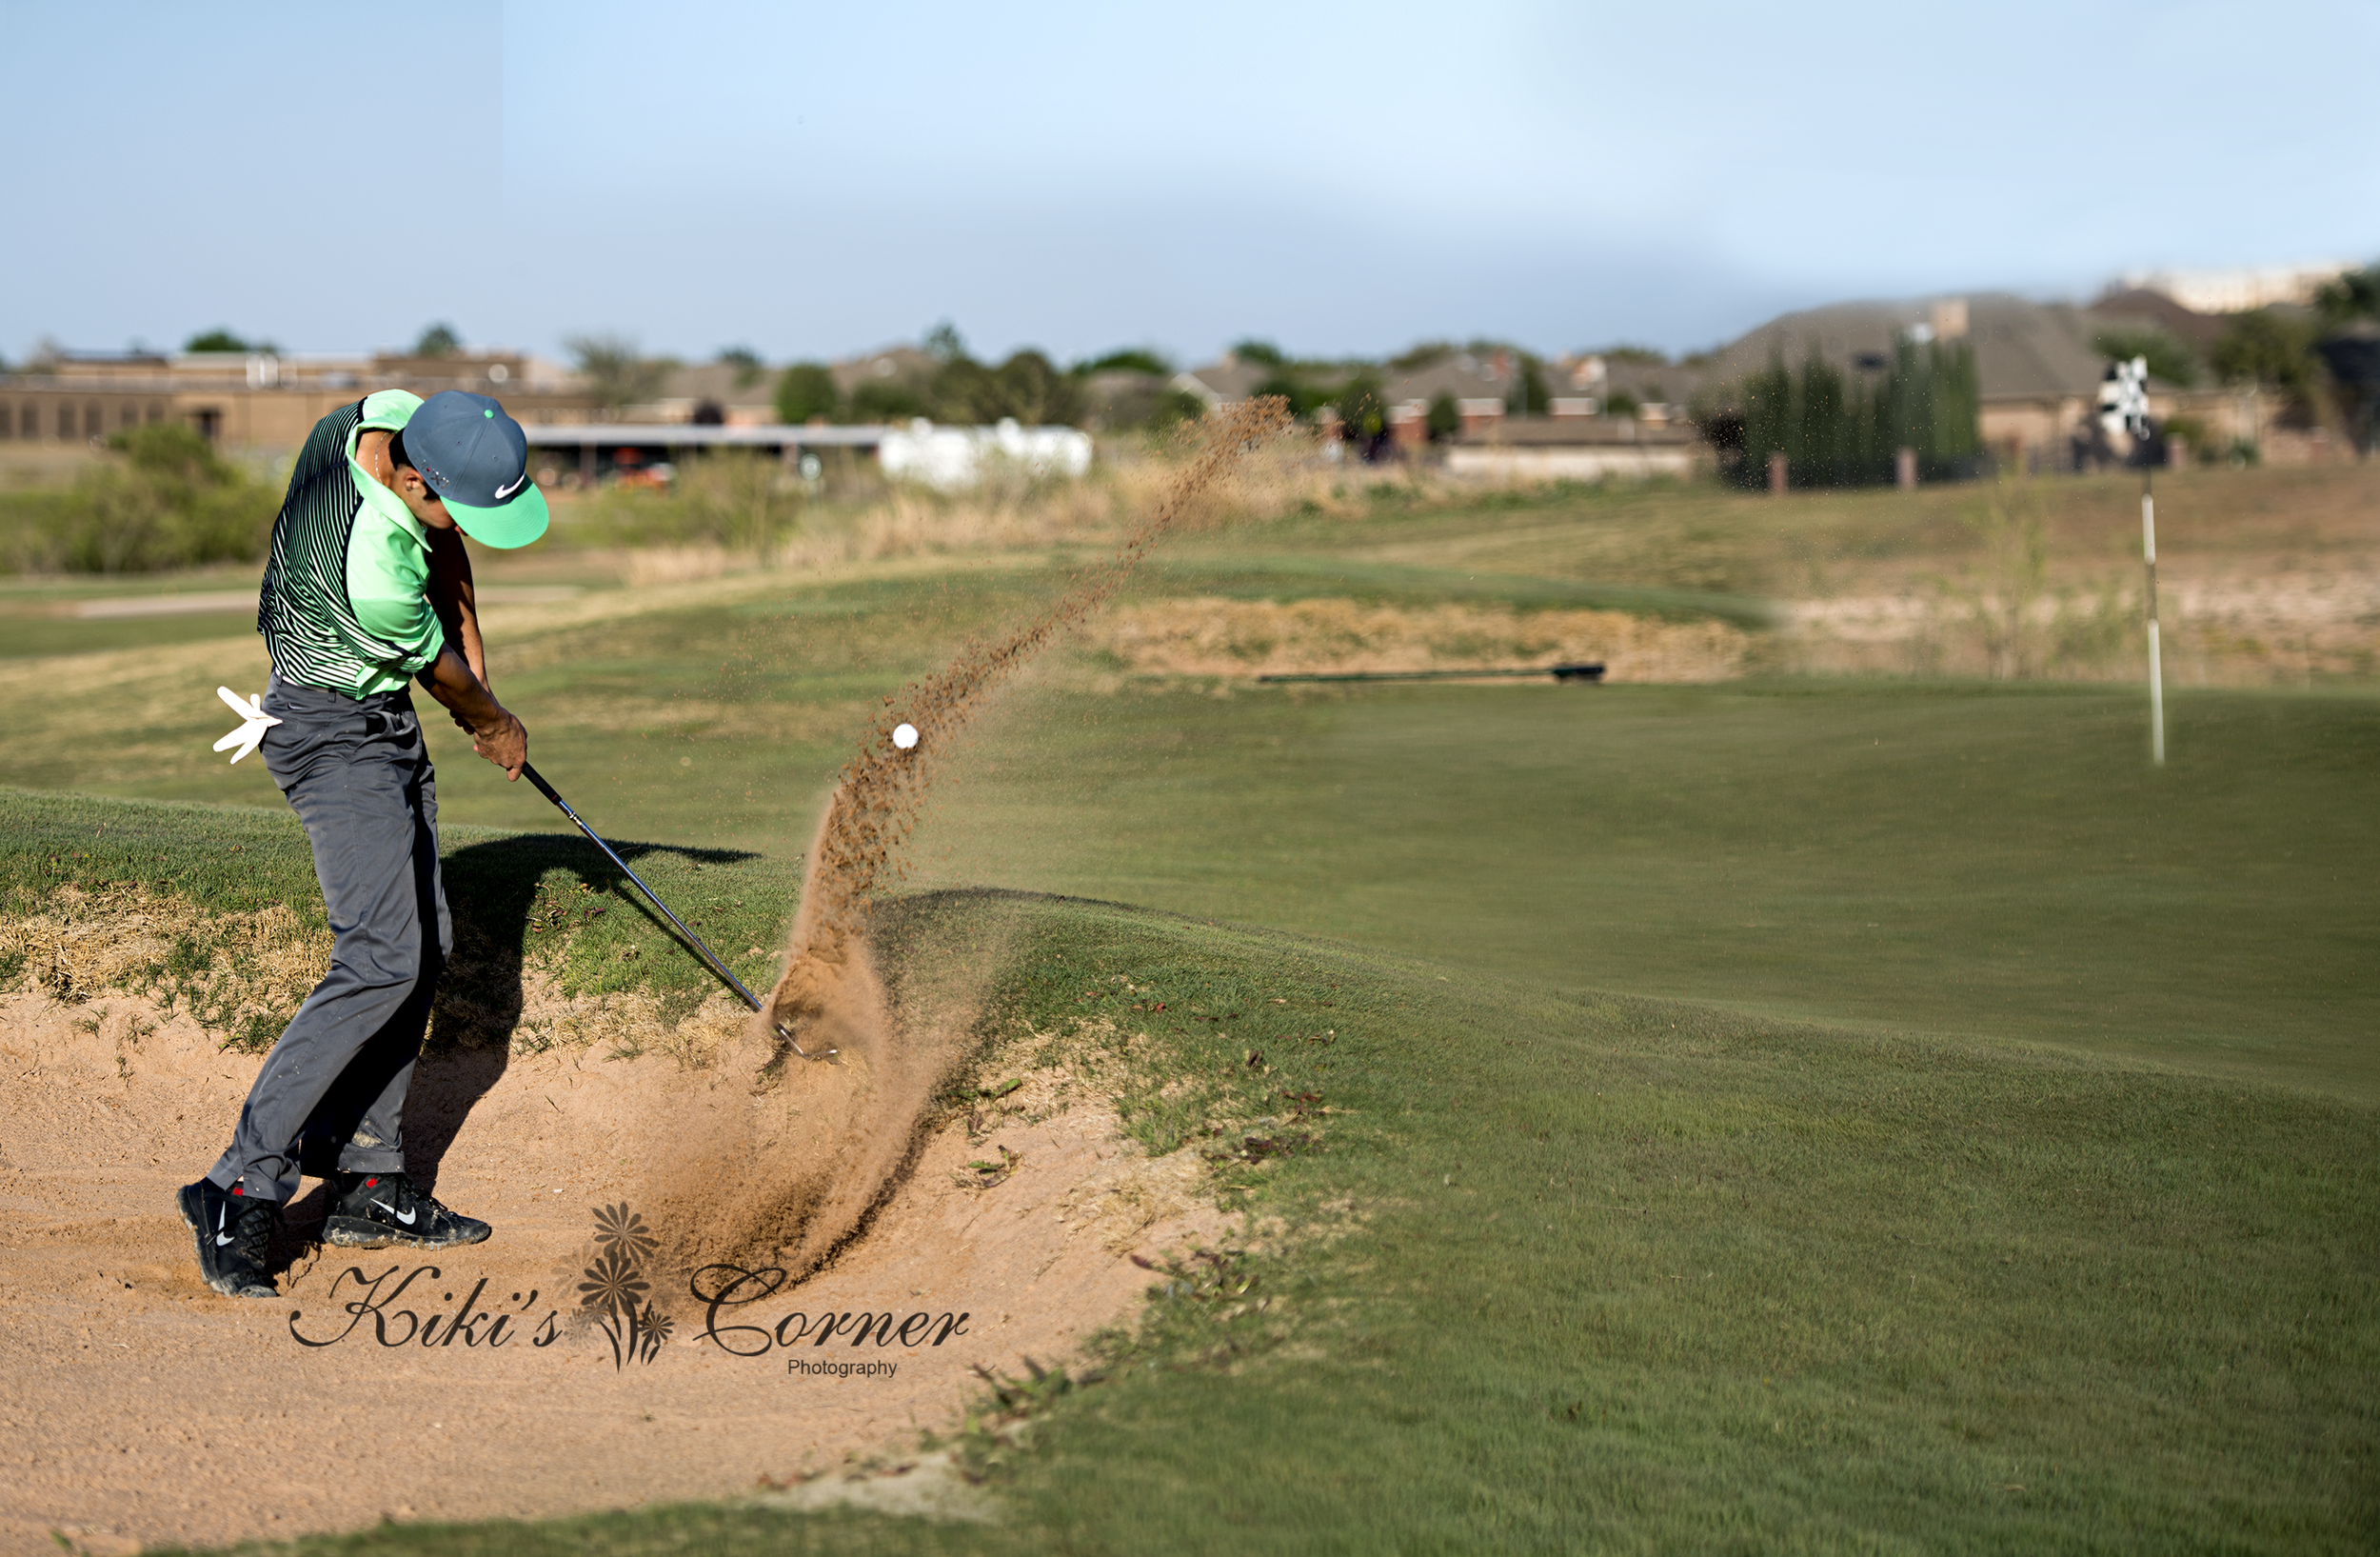 golfing, senior guy golfing, sand trap, awesome sand motion, golf magazine cover